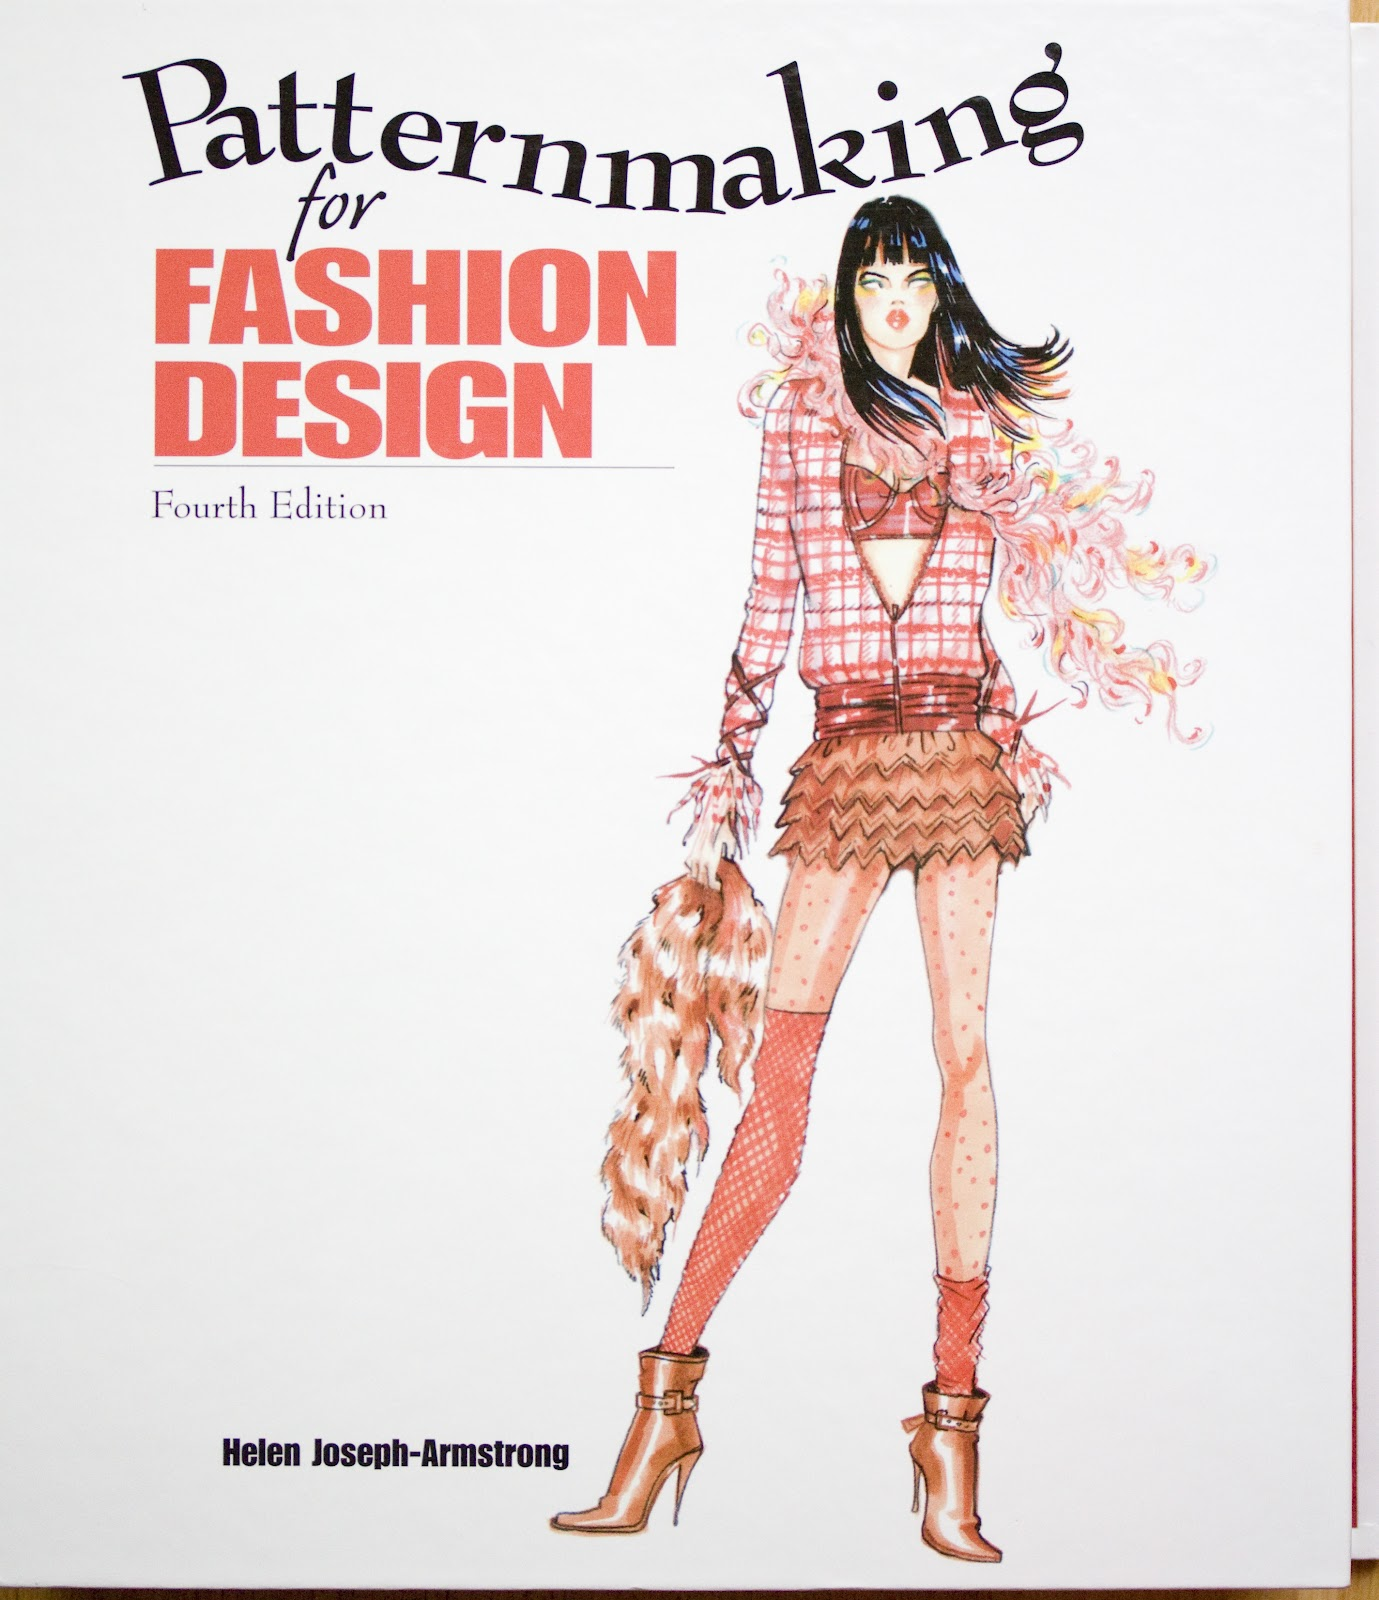 Patternmaking for fashion design 5th edition ebook 63